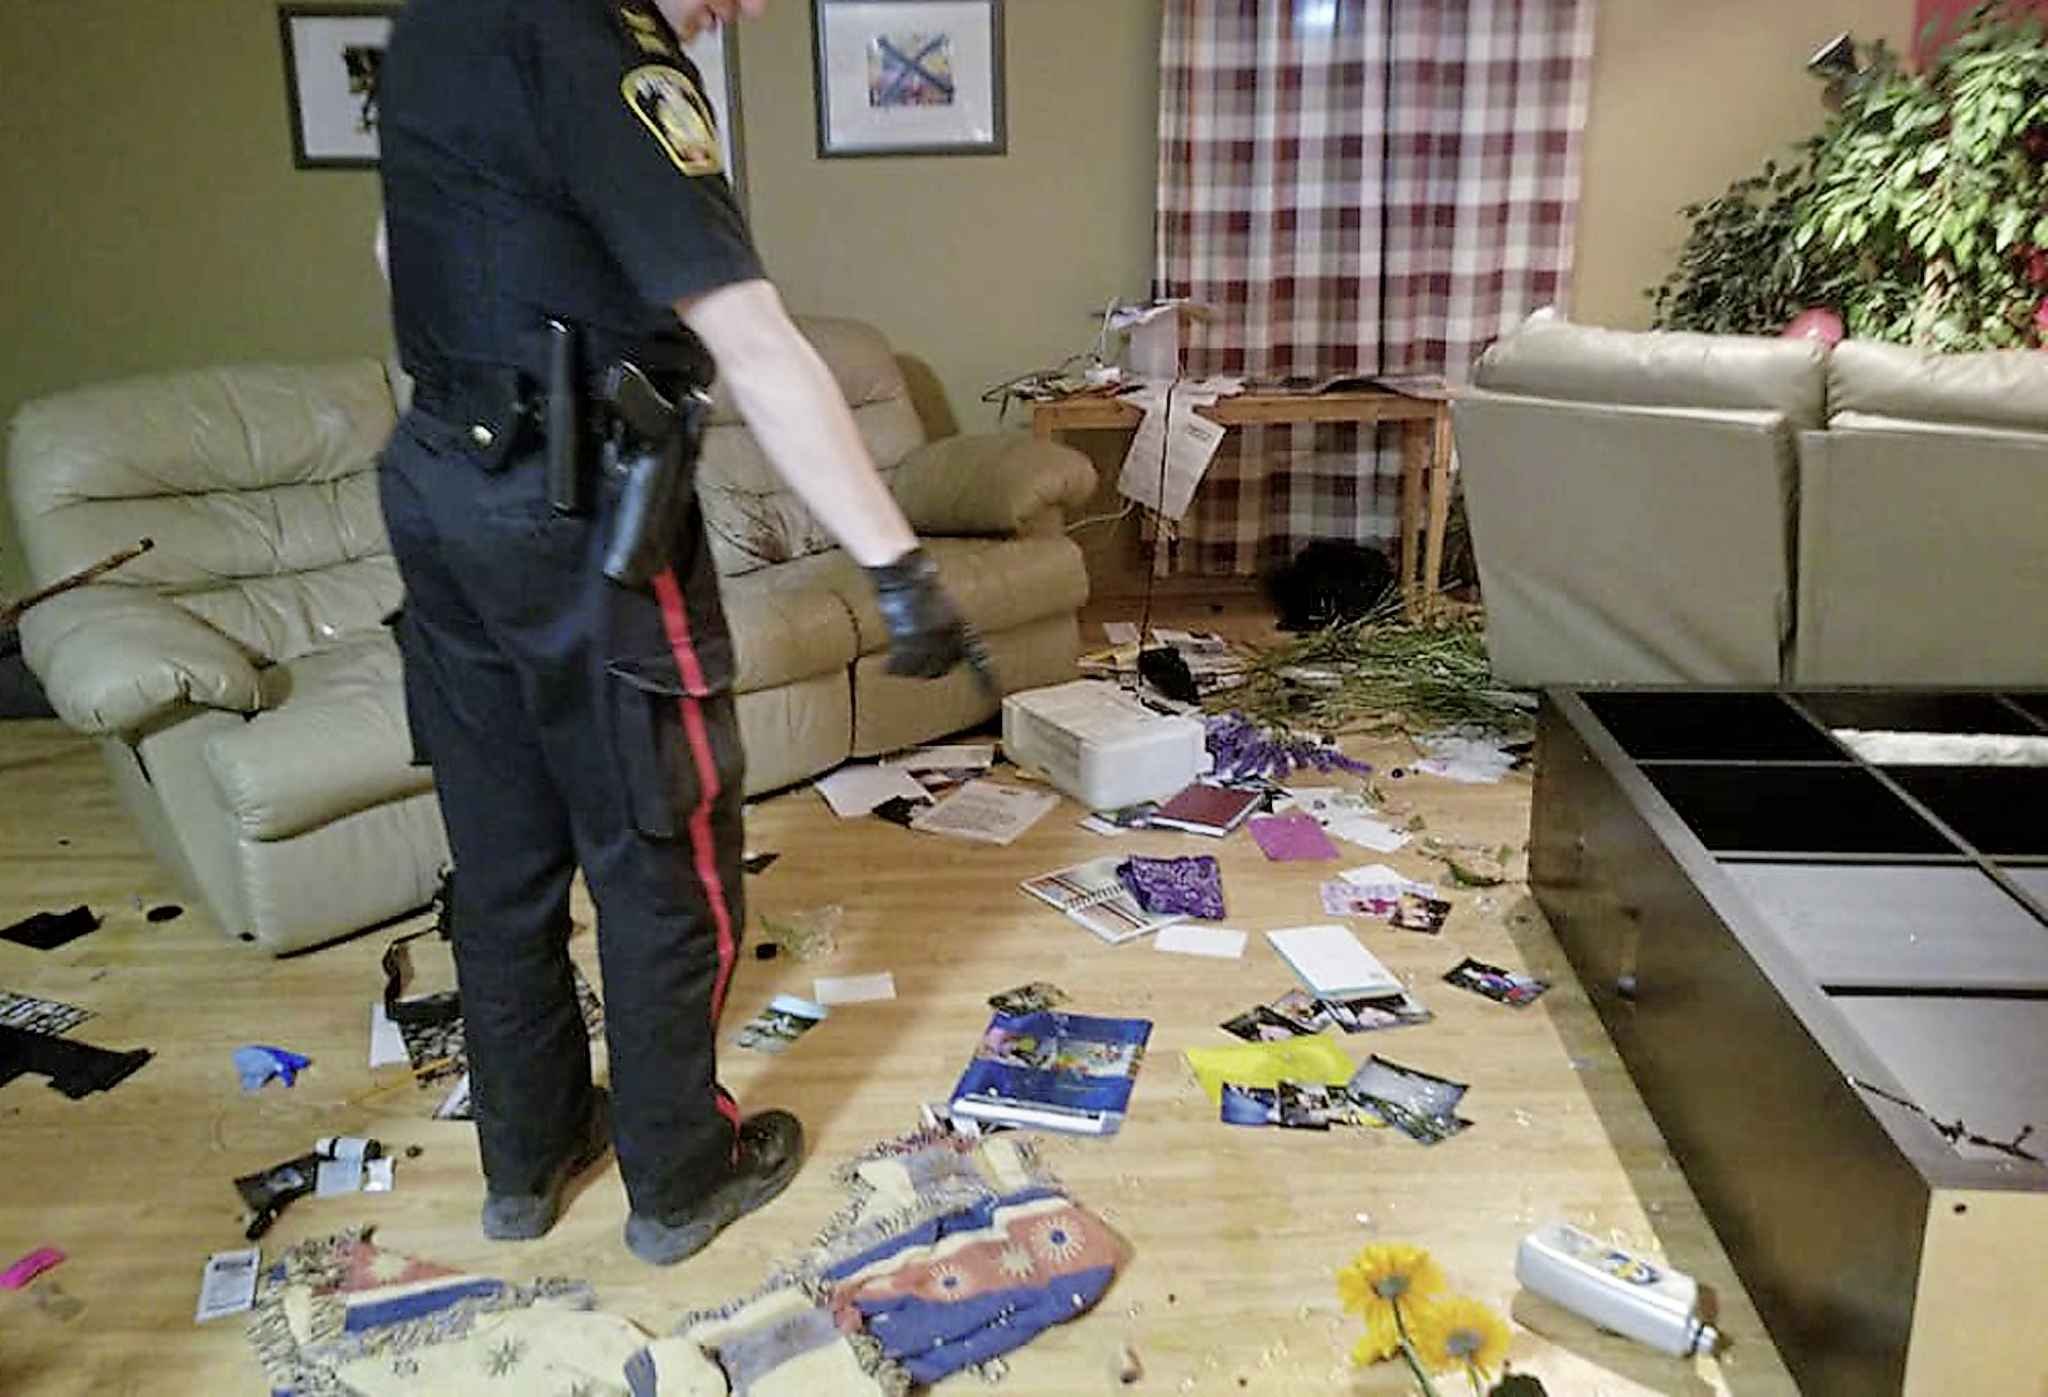 Officers responded to a call about the break-in at the home Monday evening. (Facebook photo)